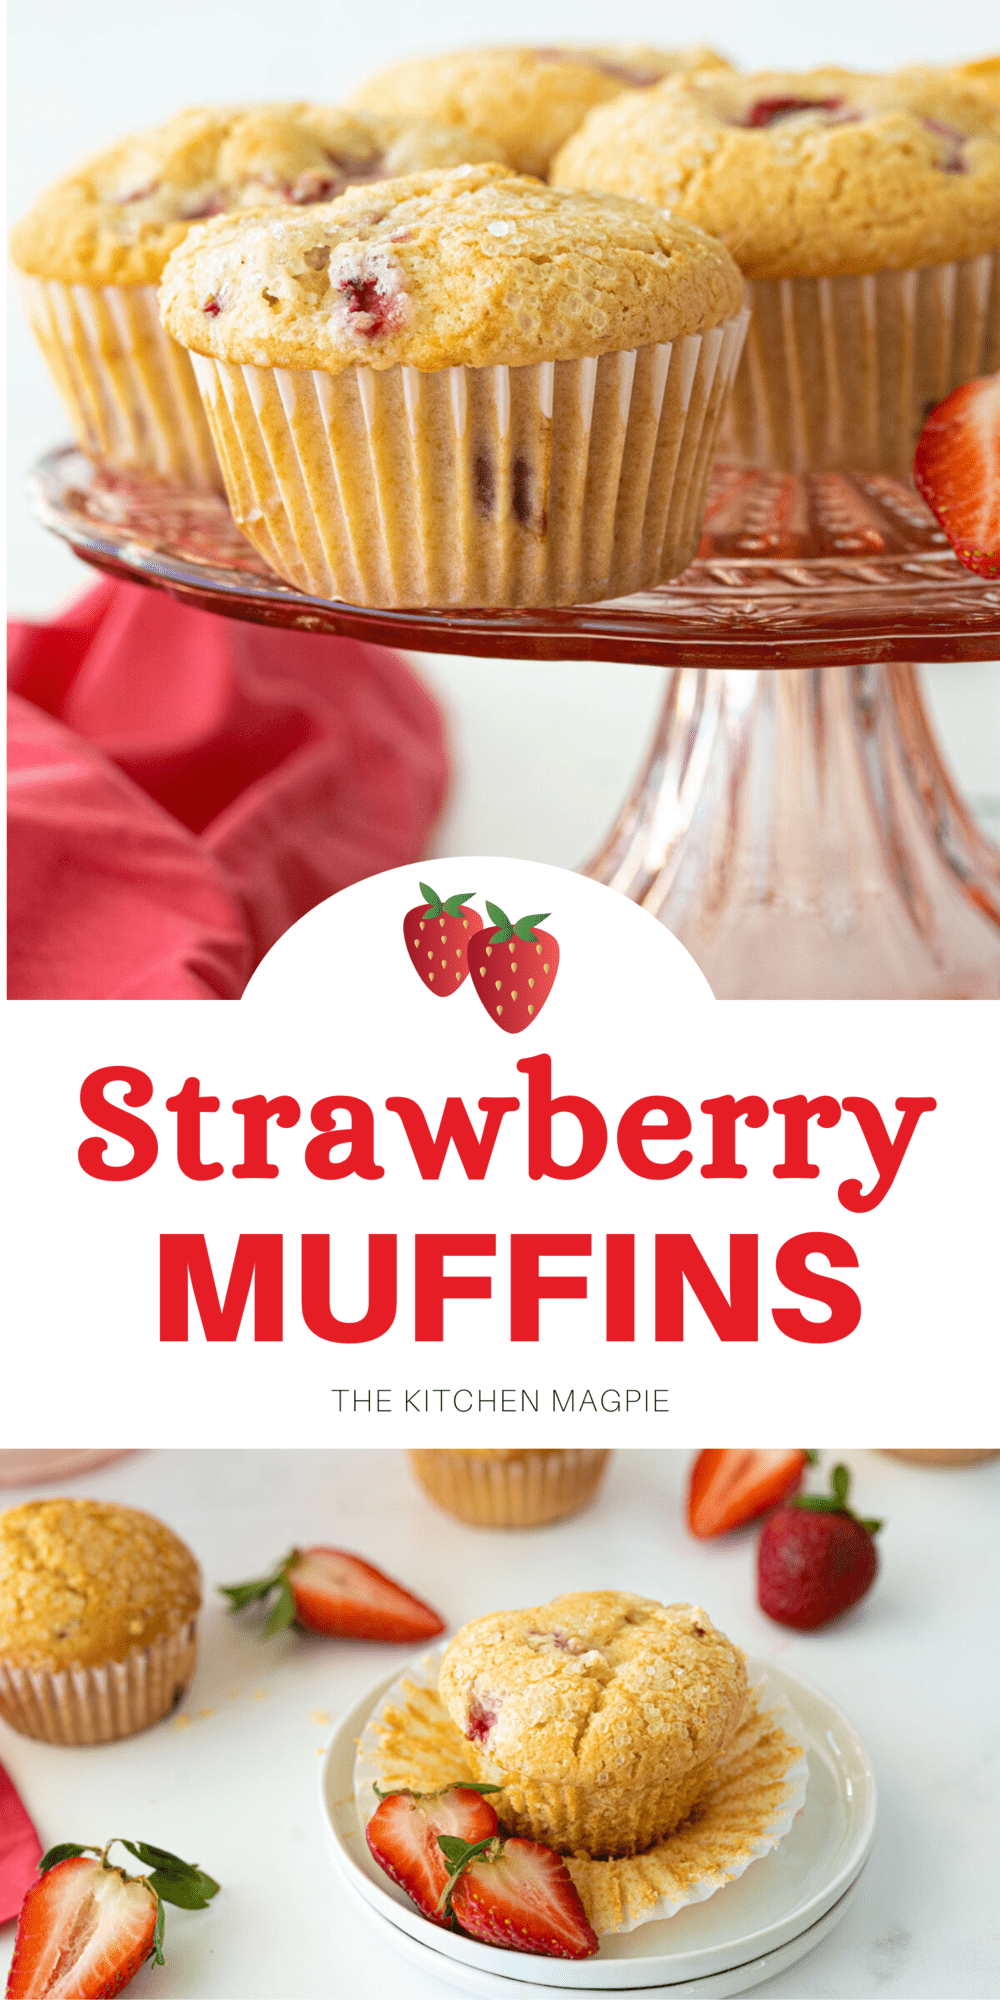 These easy and delicious strawberry muffins are a fantastic way to use up strawberries and make a great breakfast or snack!